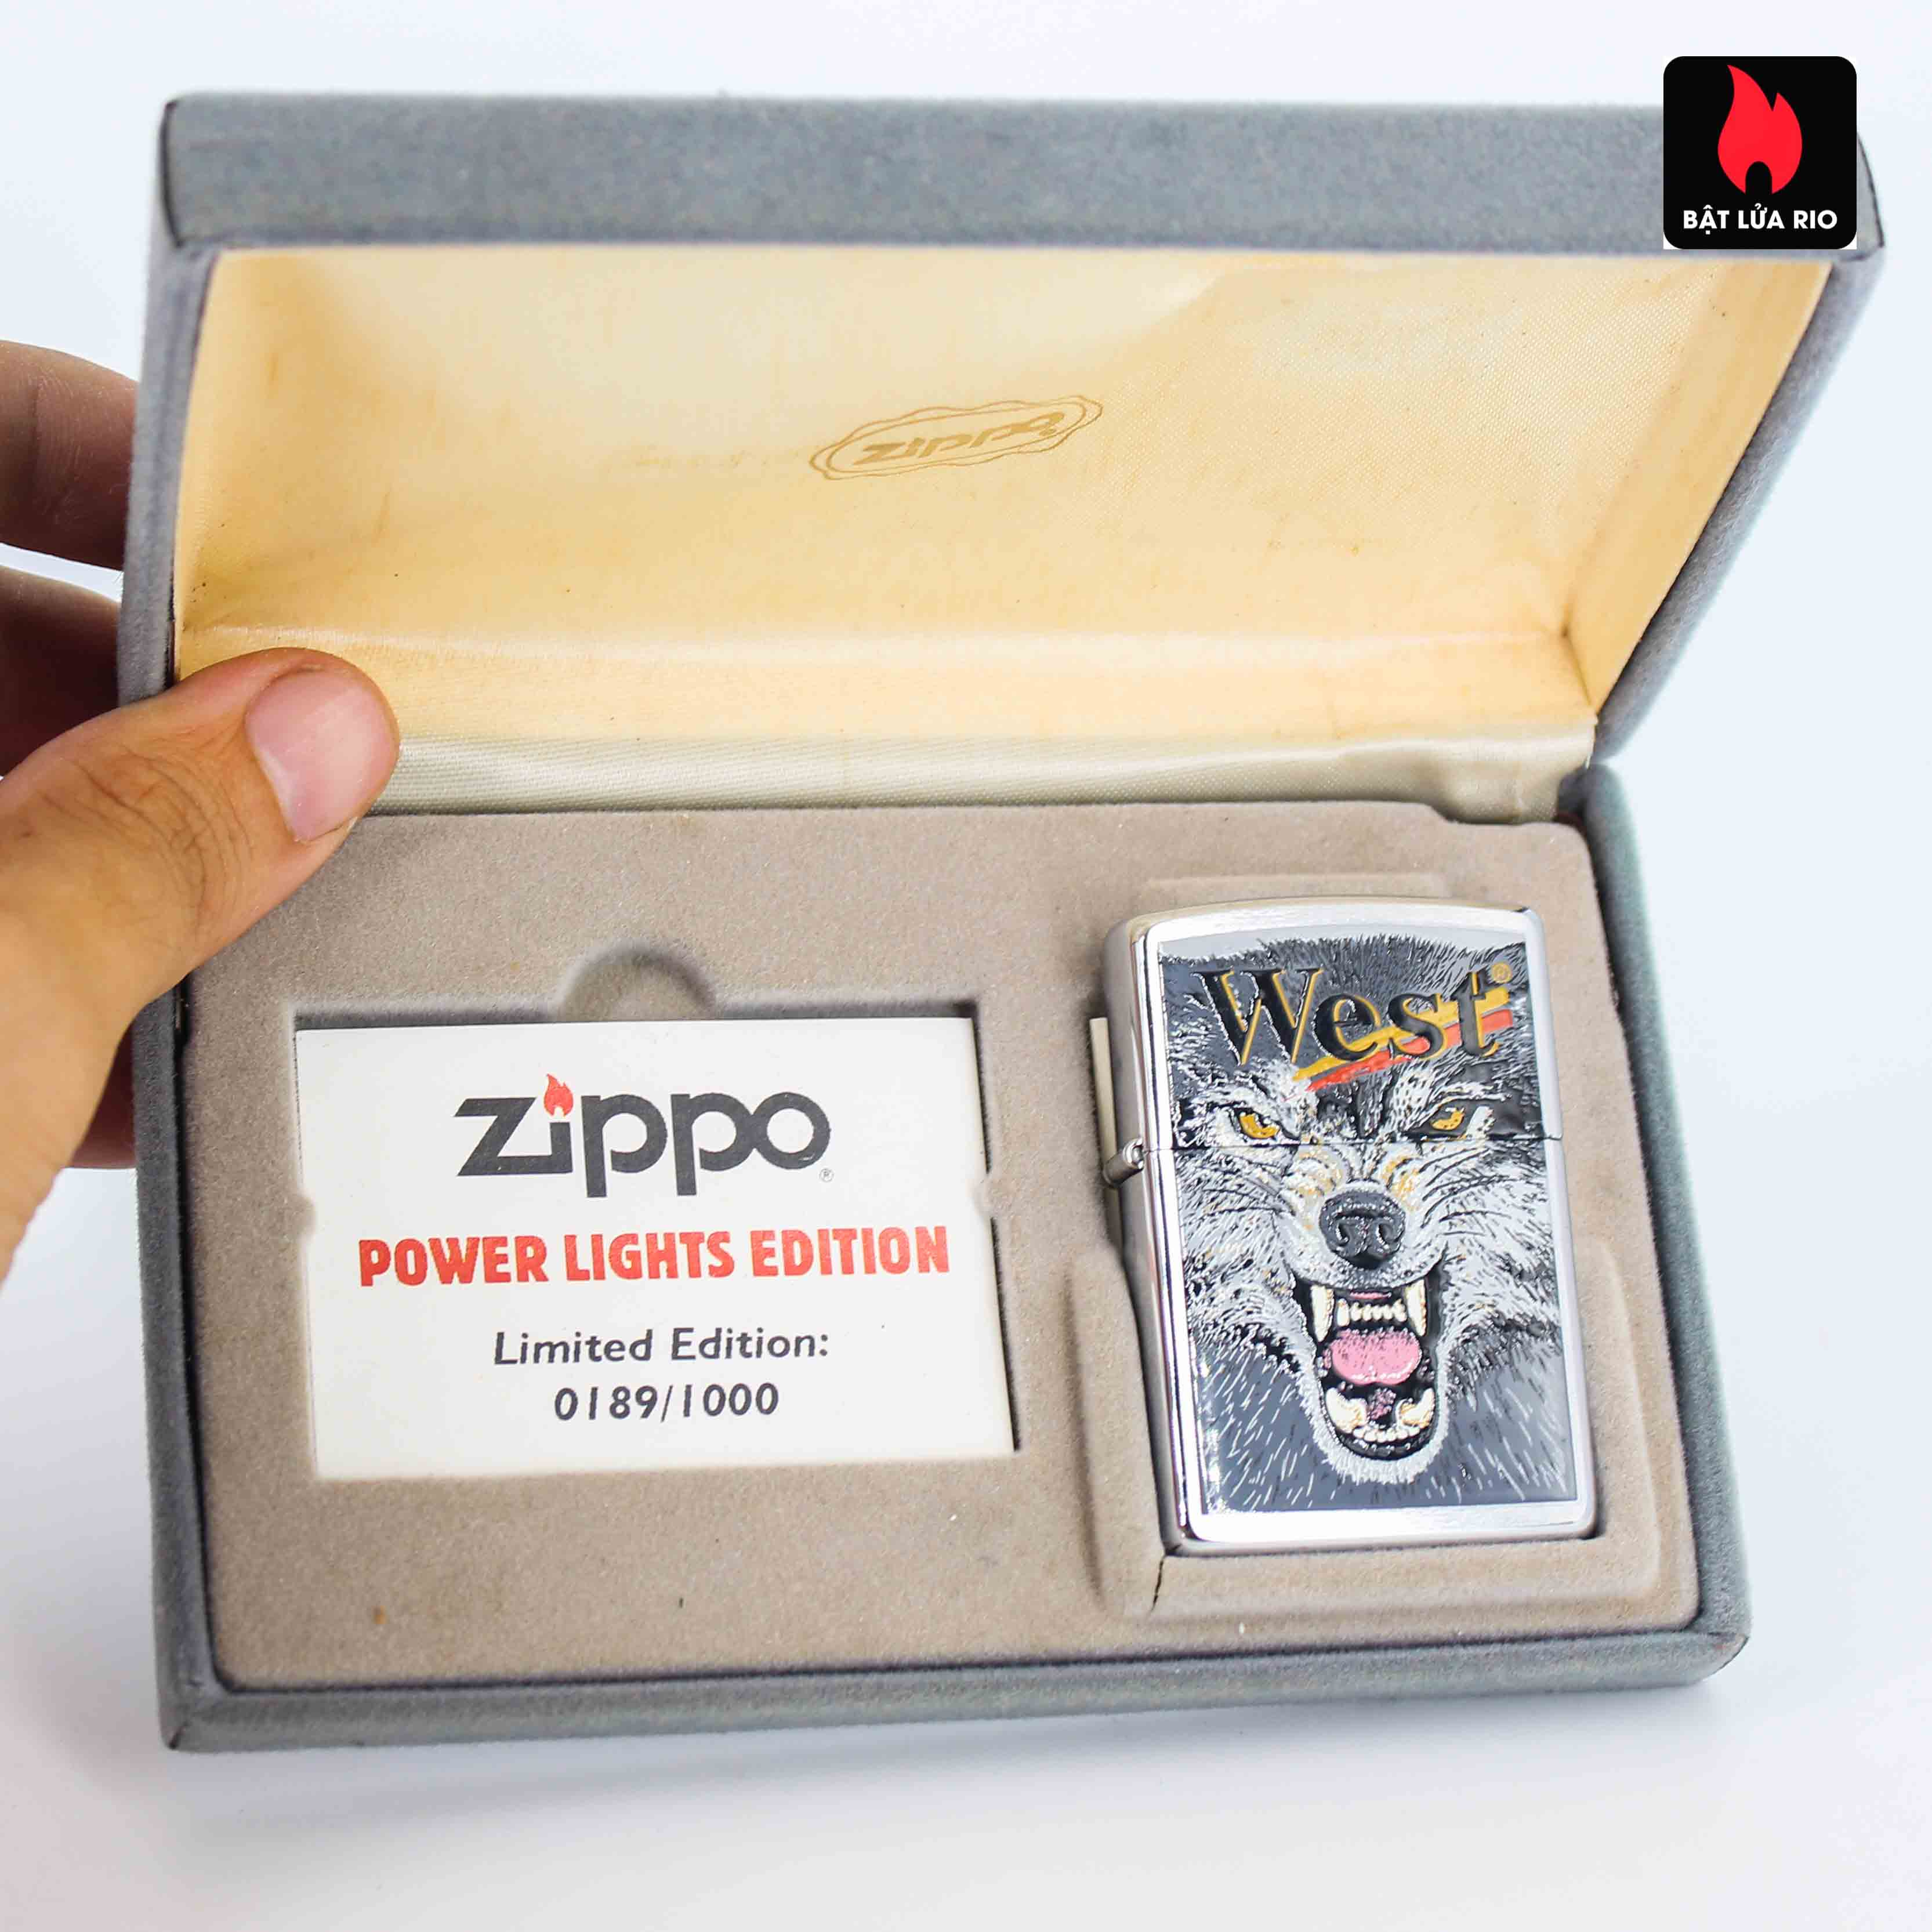 Zippo 2001 - Wild Lighters Edition - Limited Edition /1000 12